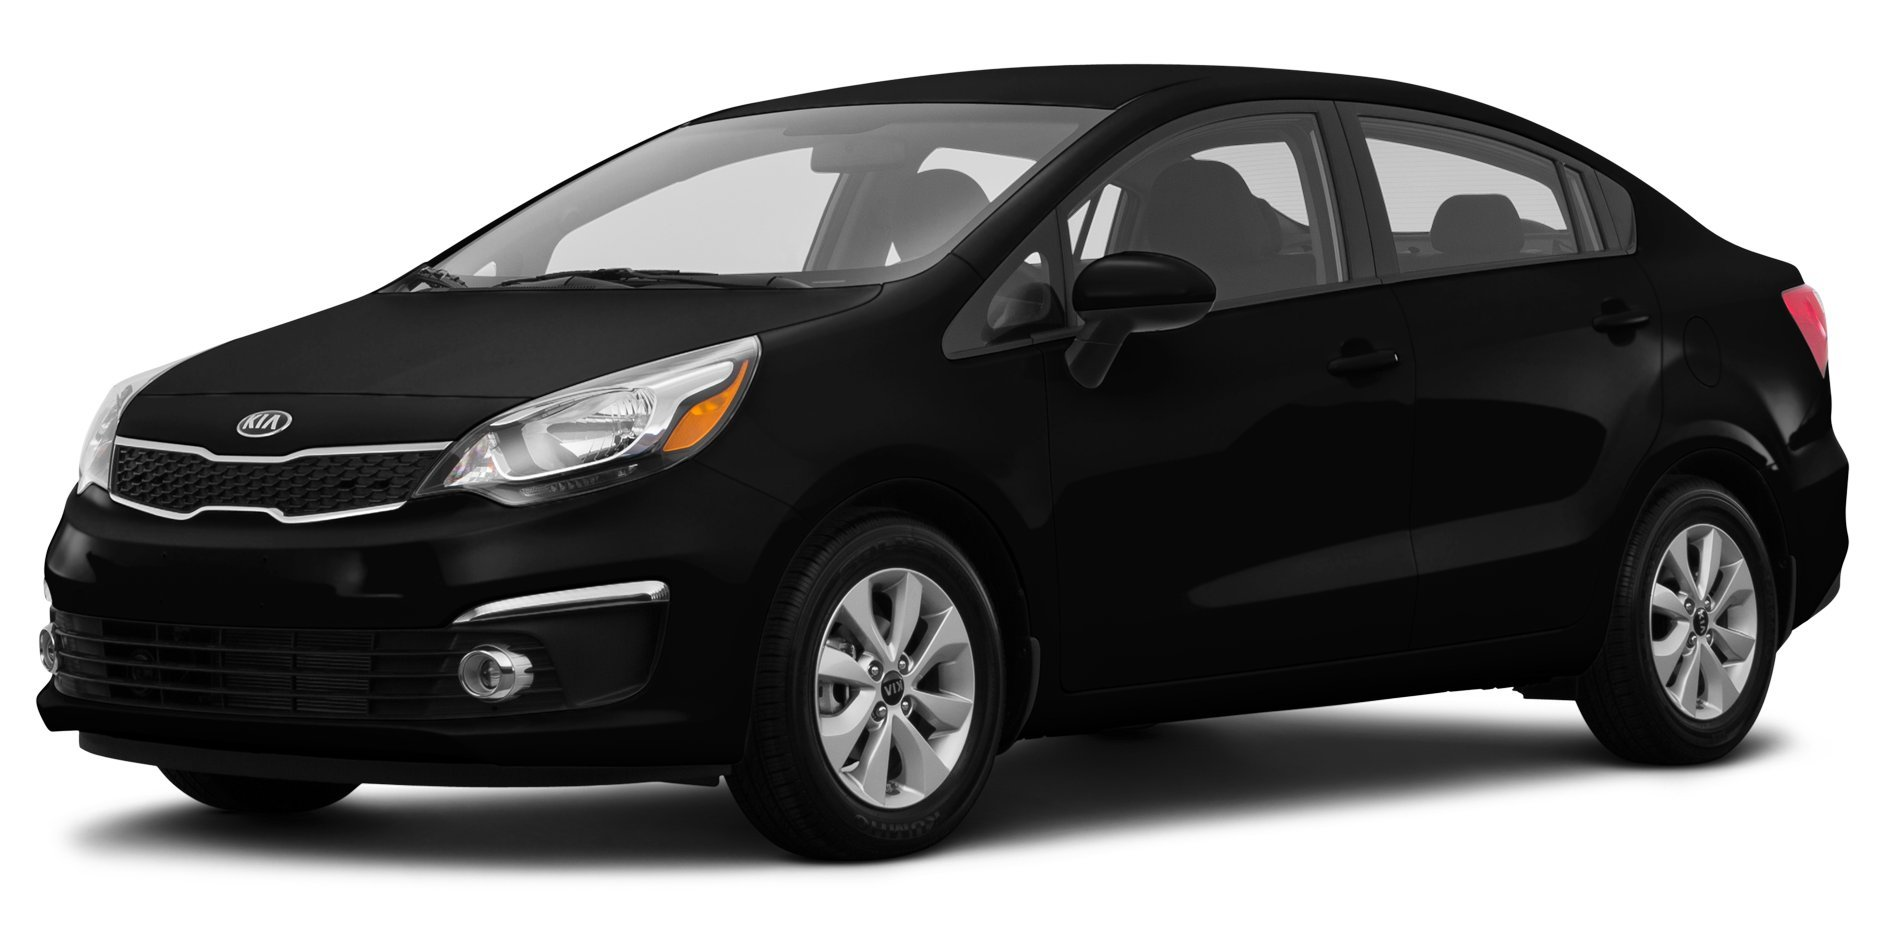 2016 kia rio reviews images and specs vehicles. Black Bedroom Furniture Sets. Home Design Ideas